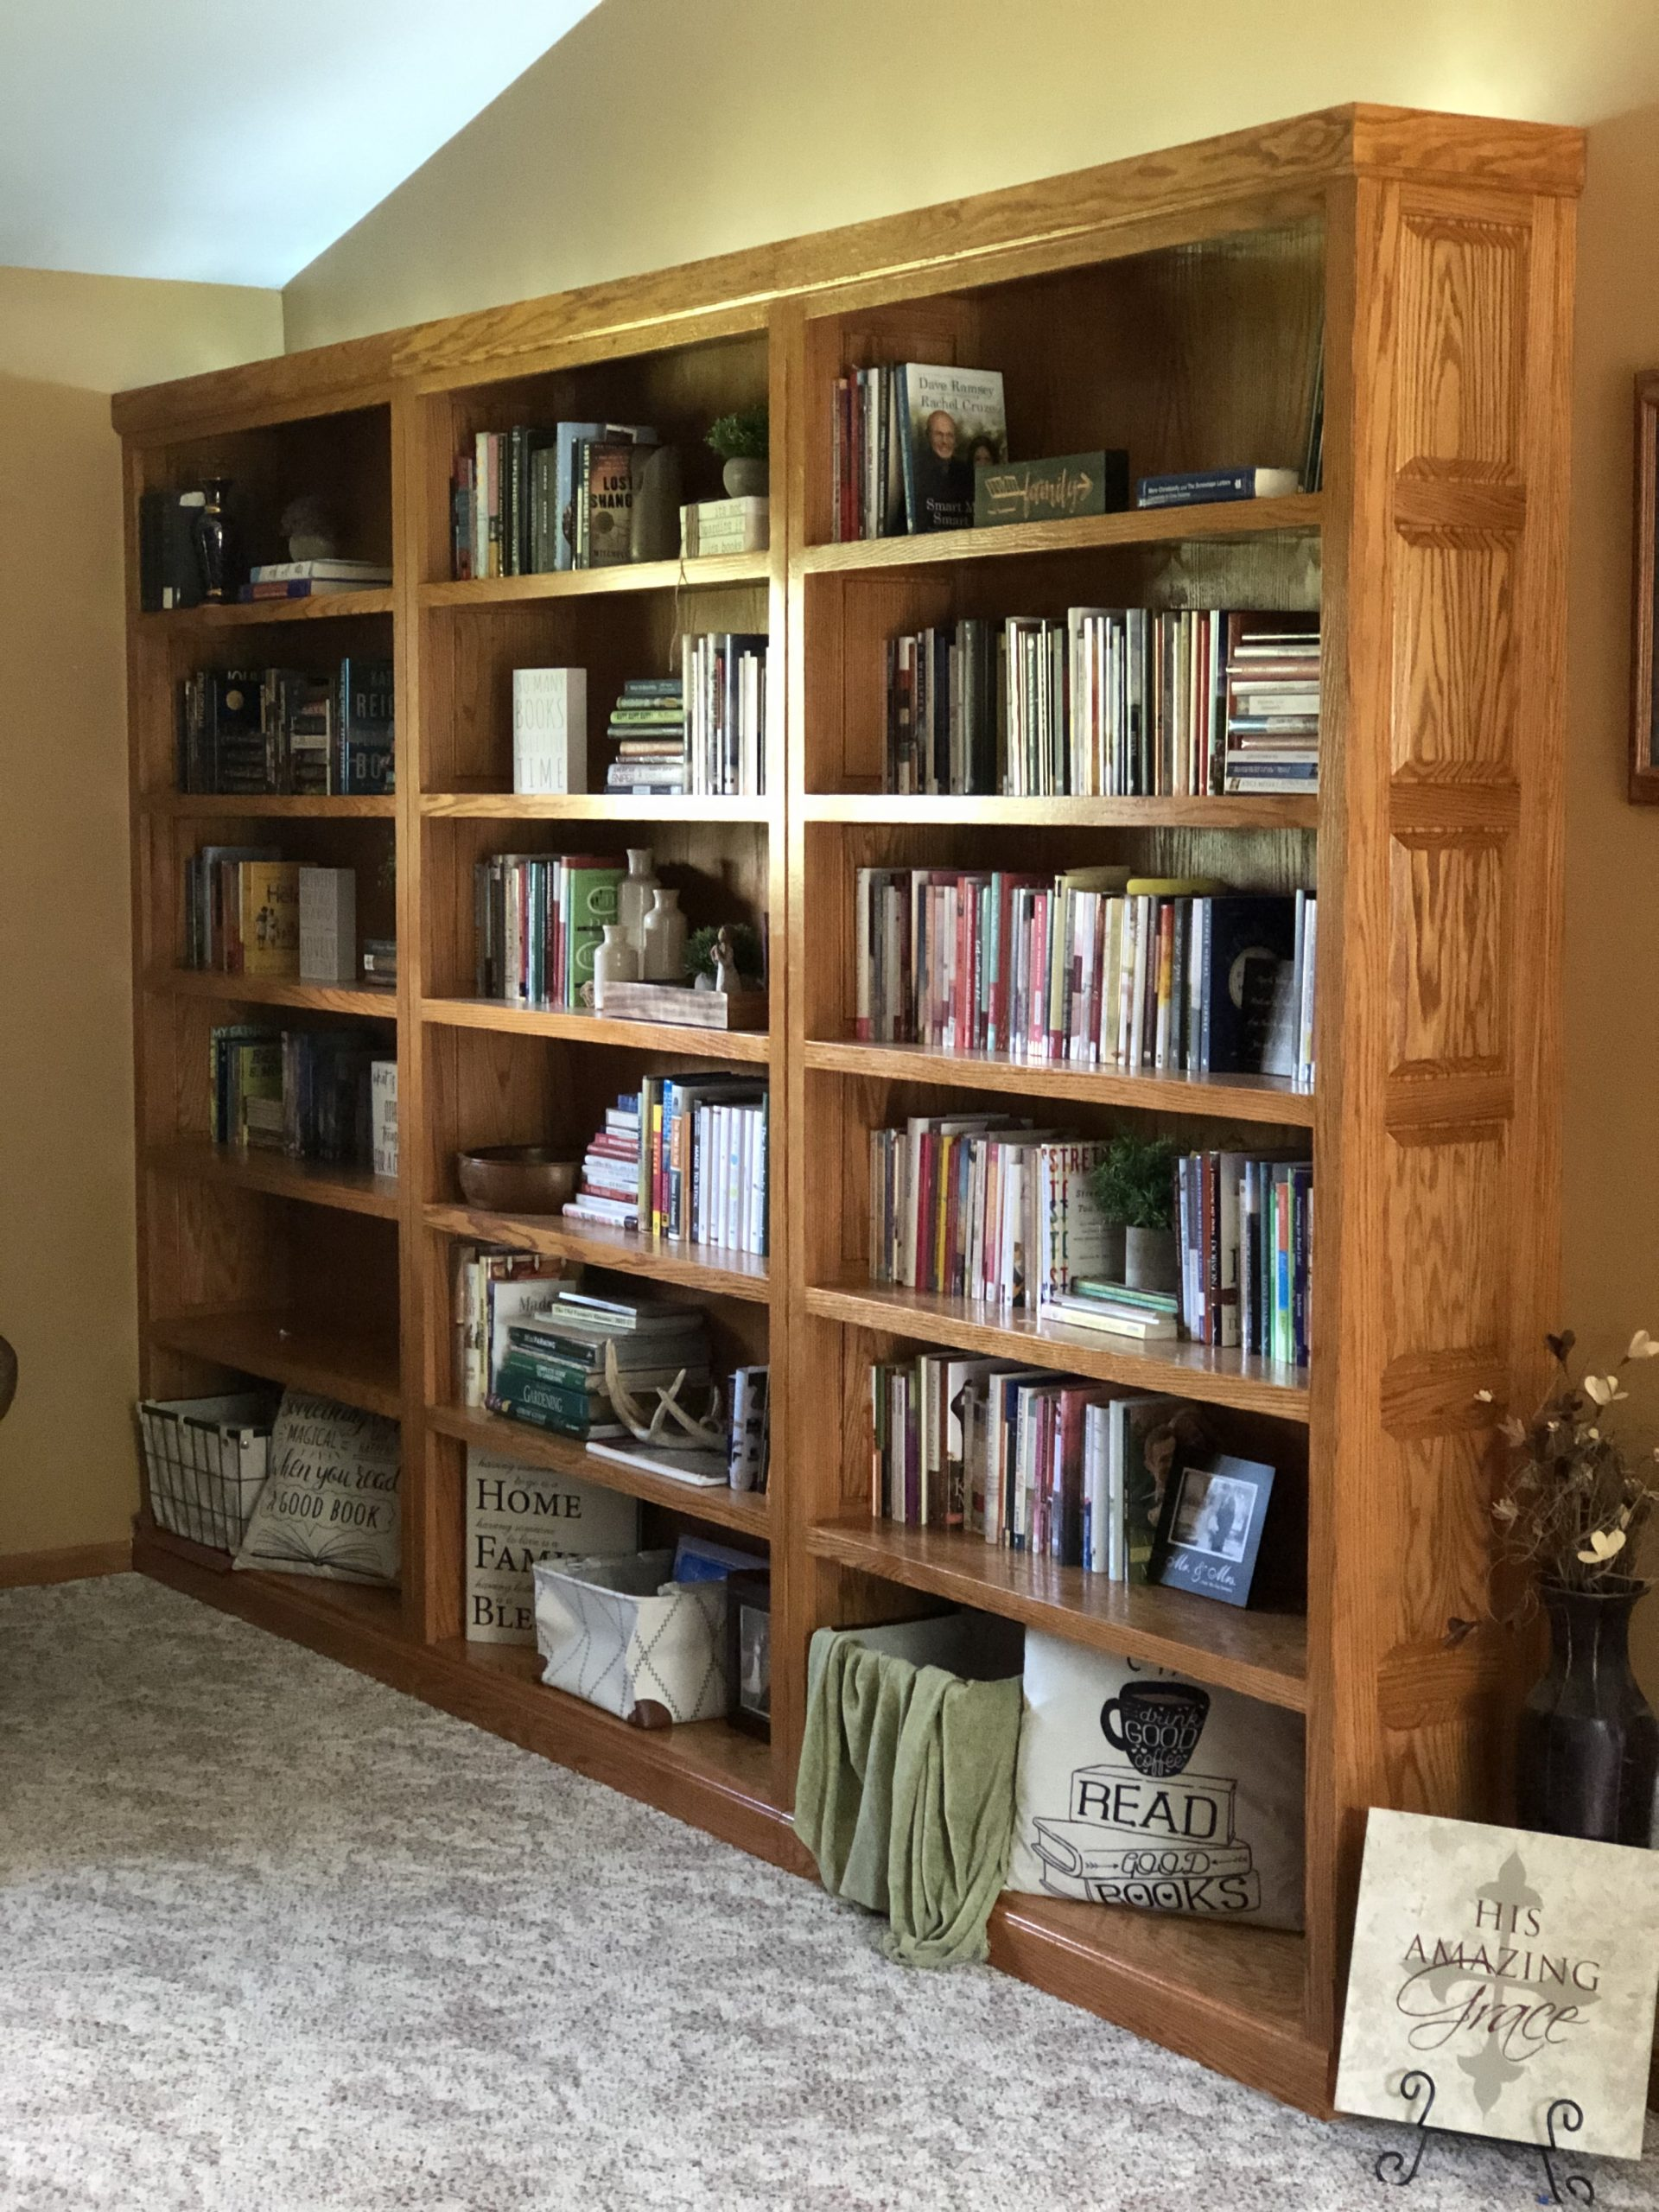 My complete set of bookcases